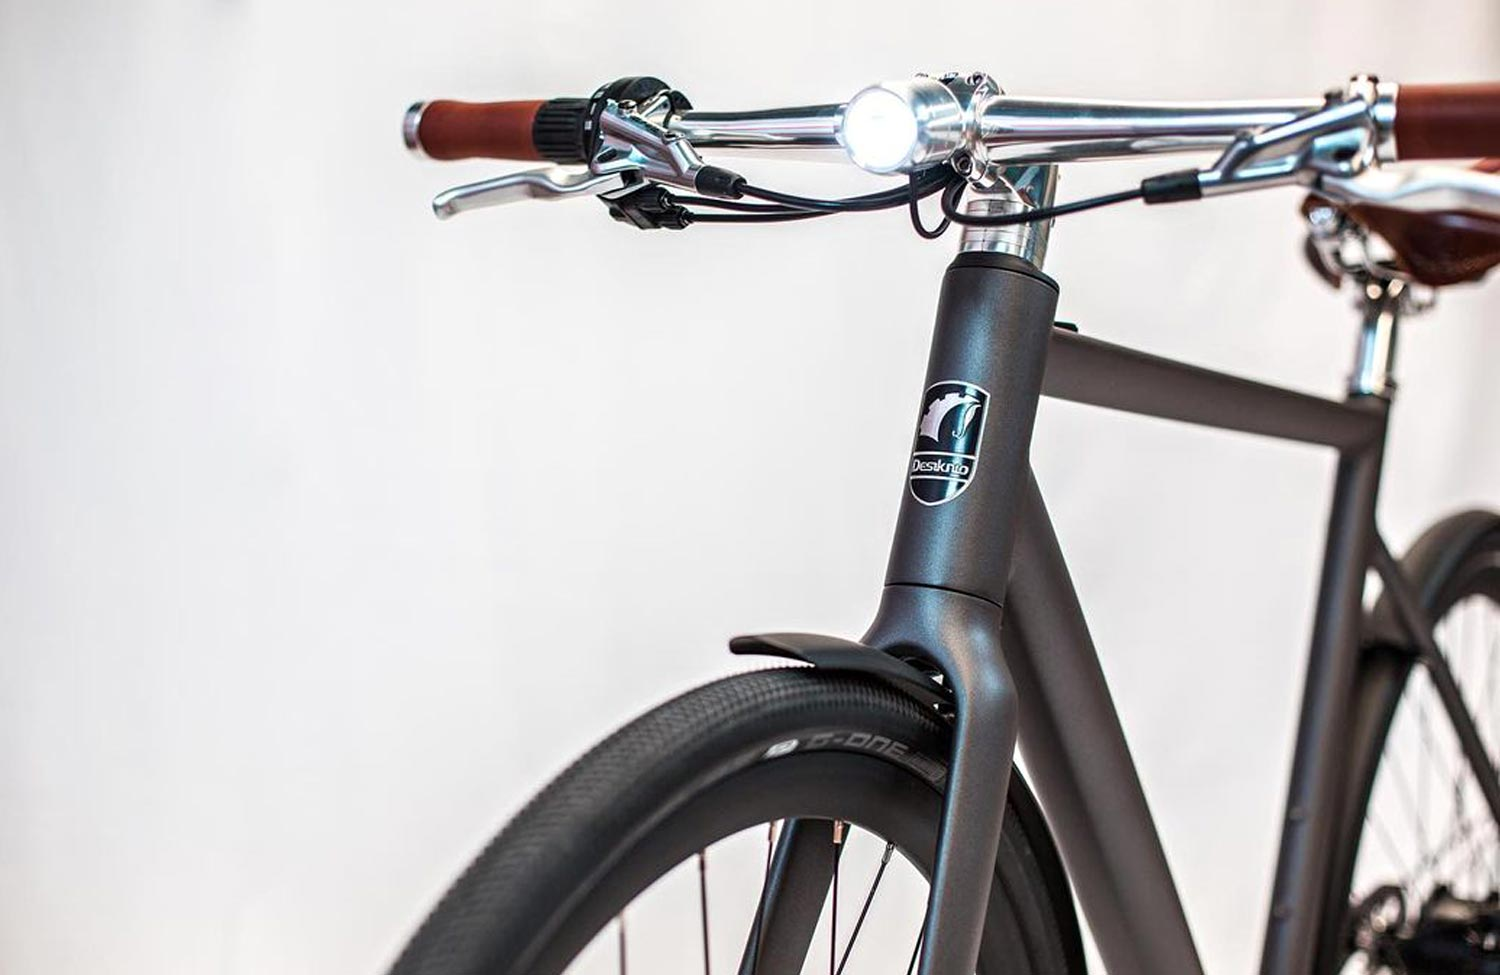 Optimized lineup and design improvements for Desiknio's urban e-bikes